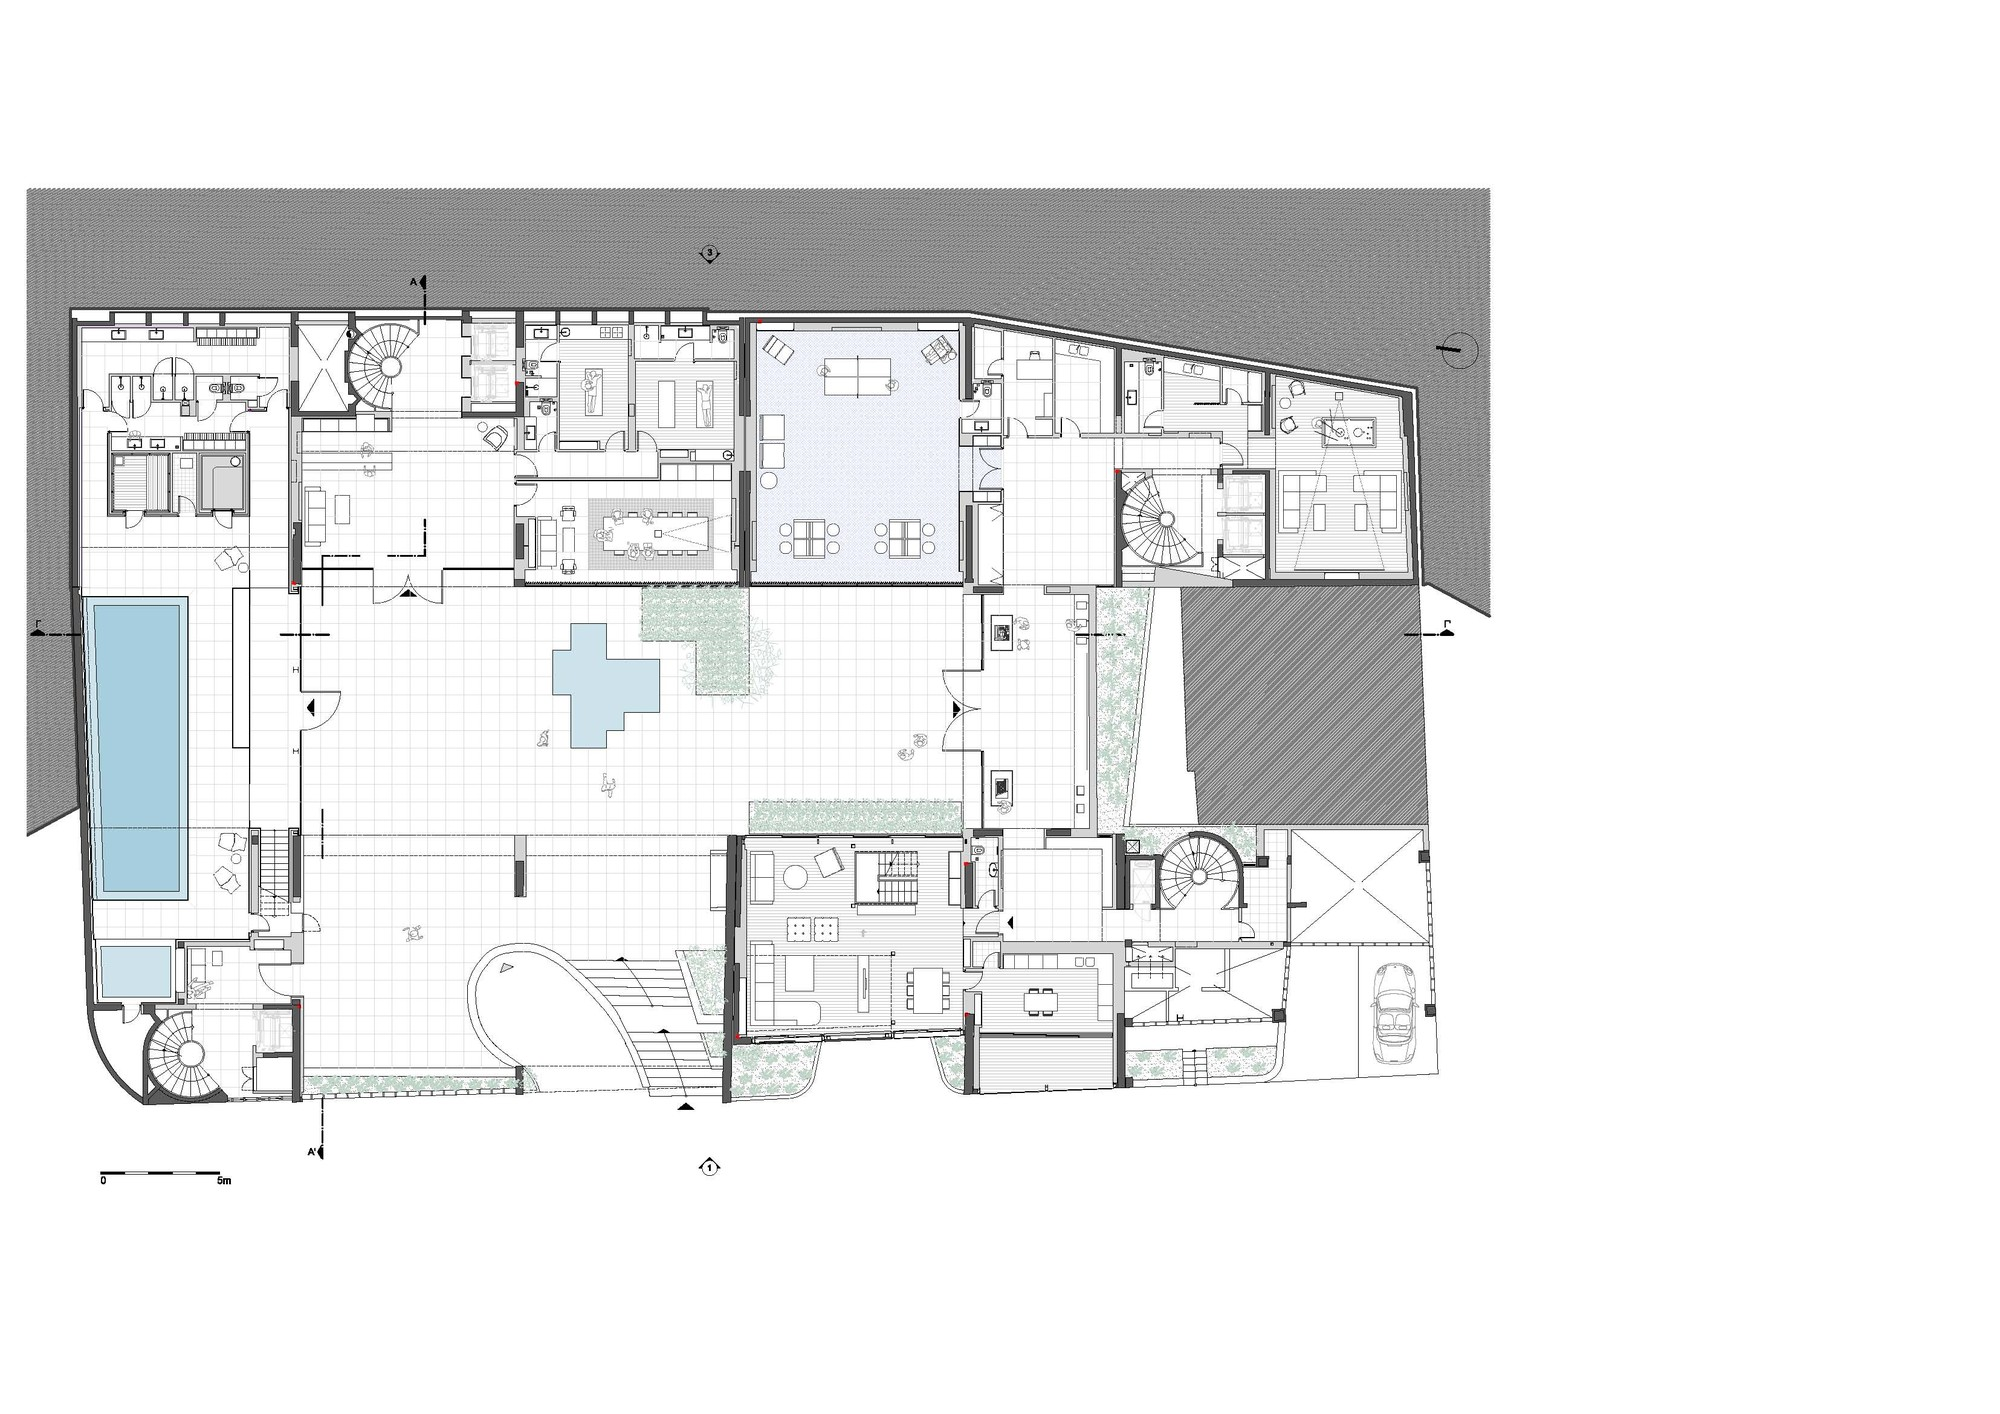 Conversion Of Doxiadis Office Building Ati To Apartment Divercity Ground Floor Plan